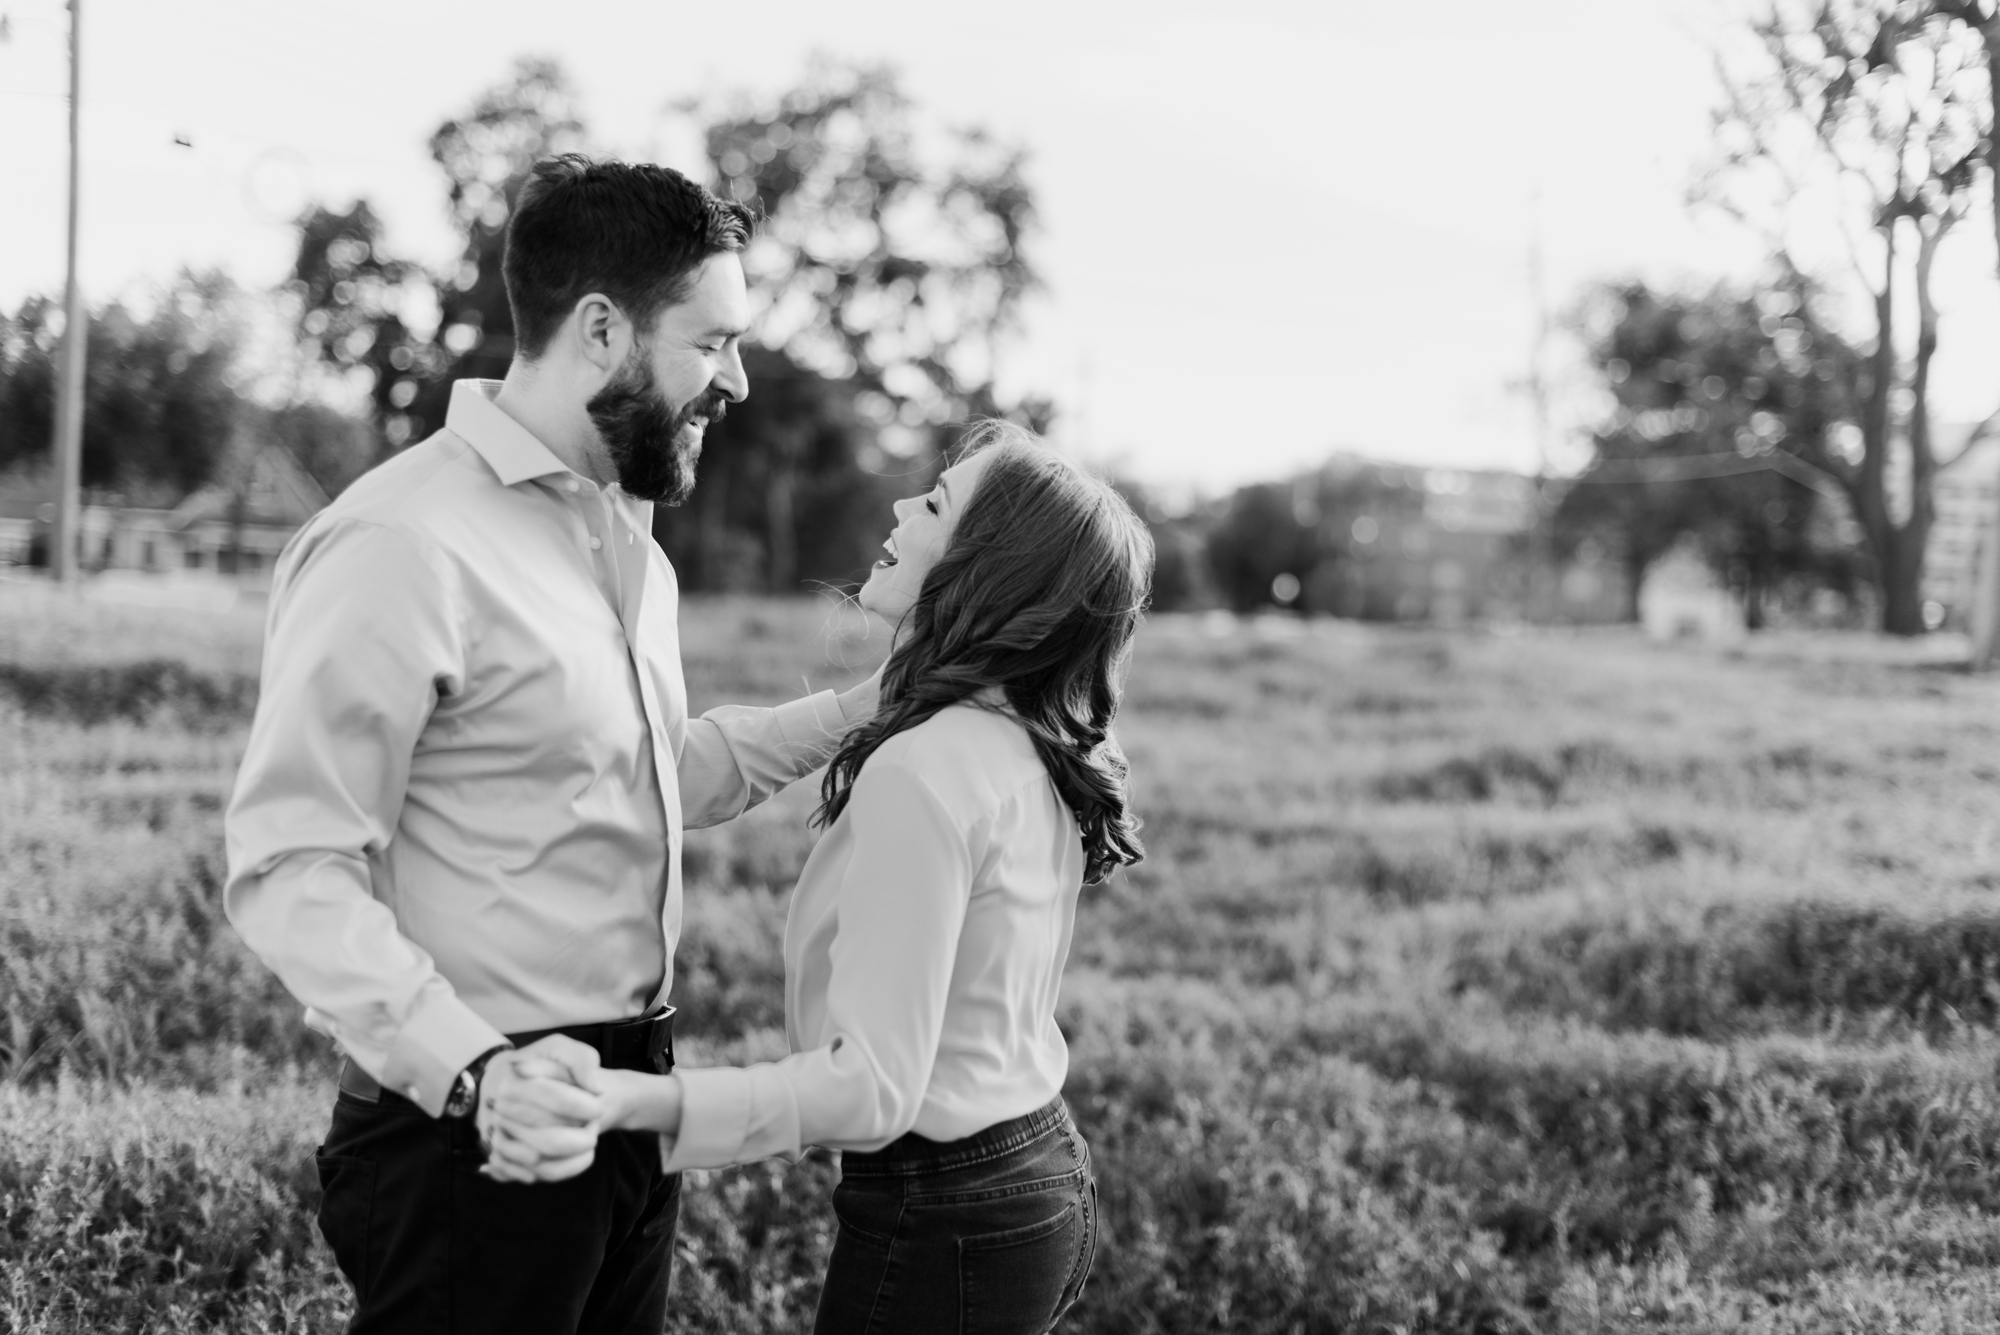 INQUIRE ABOUT YOUR ENGAGEMENT SESSION - Engagement sessions can be booked through wedding collections or individually!We can create a custom session to perfectly suit your needs.